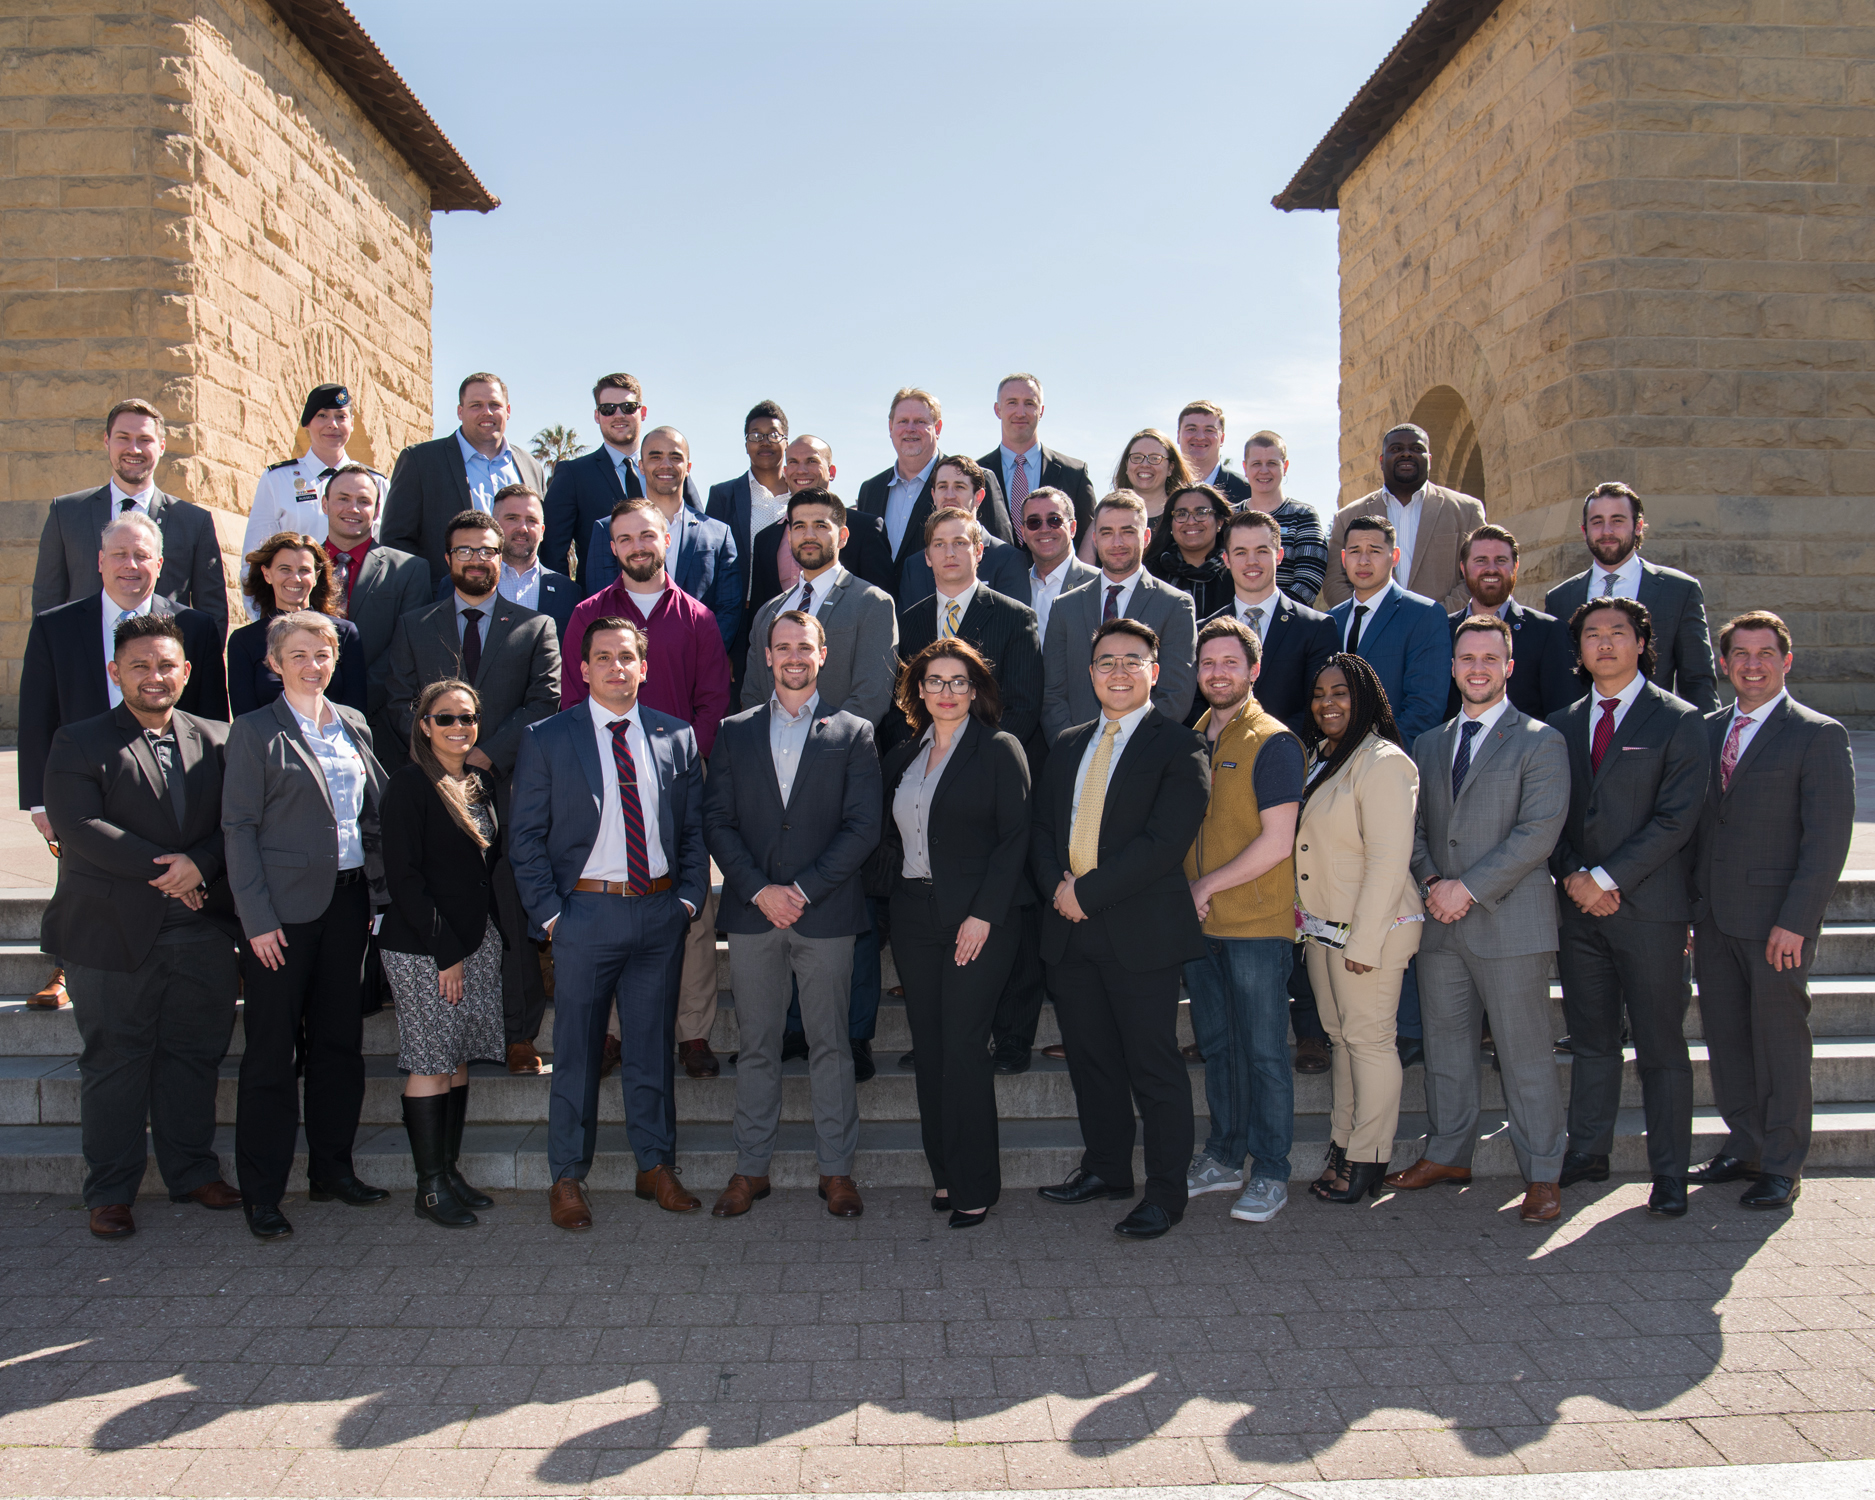 Attendees at ILVC's Spring Meeting 2019